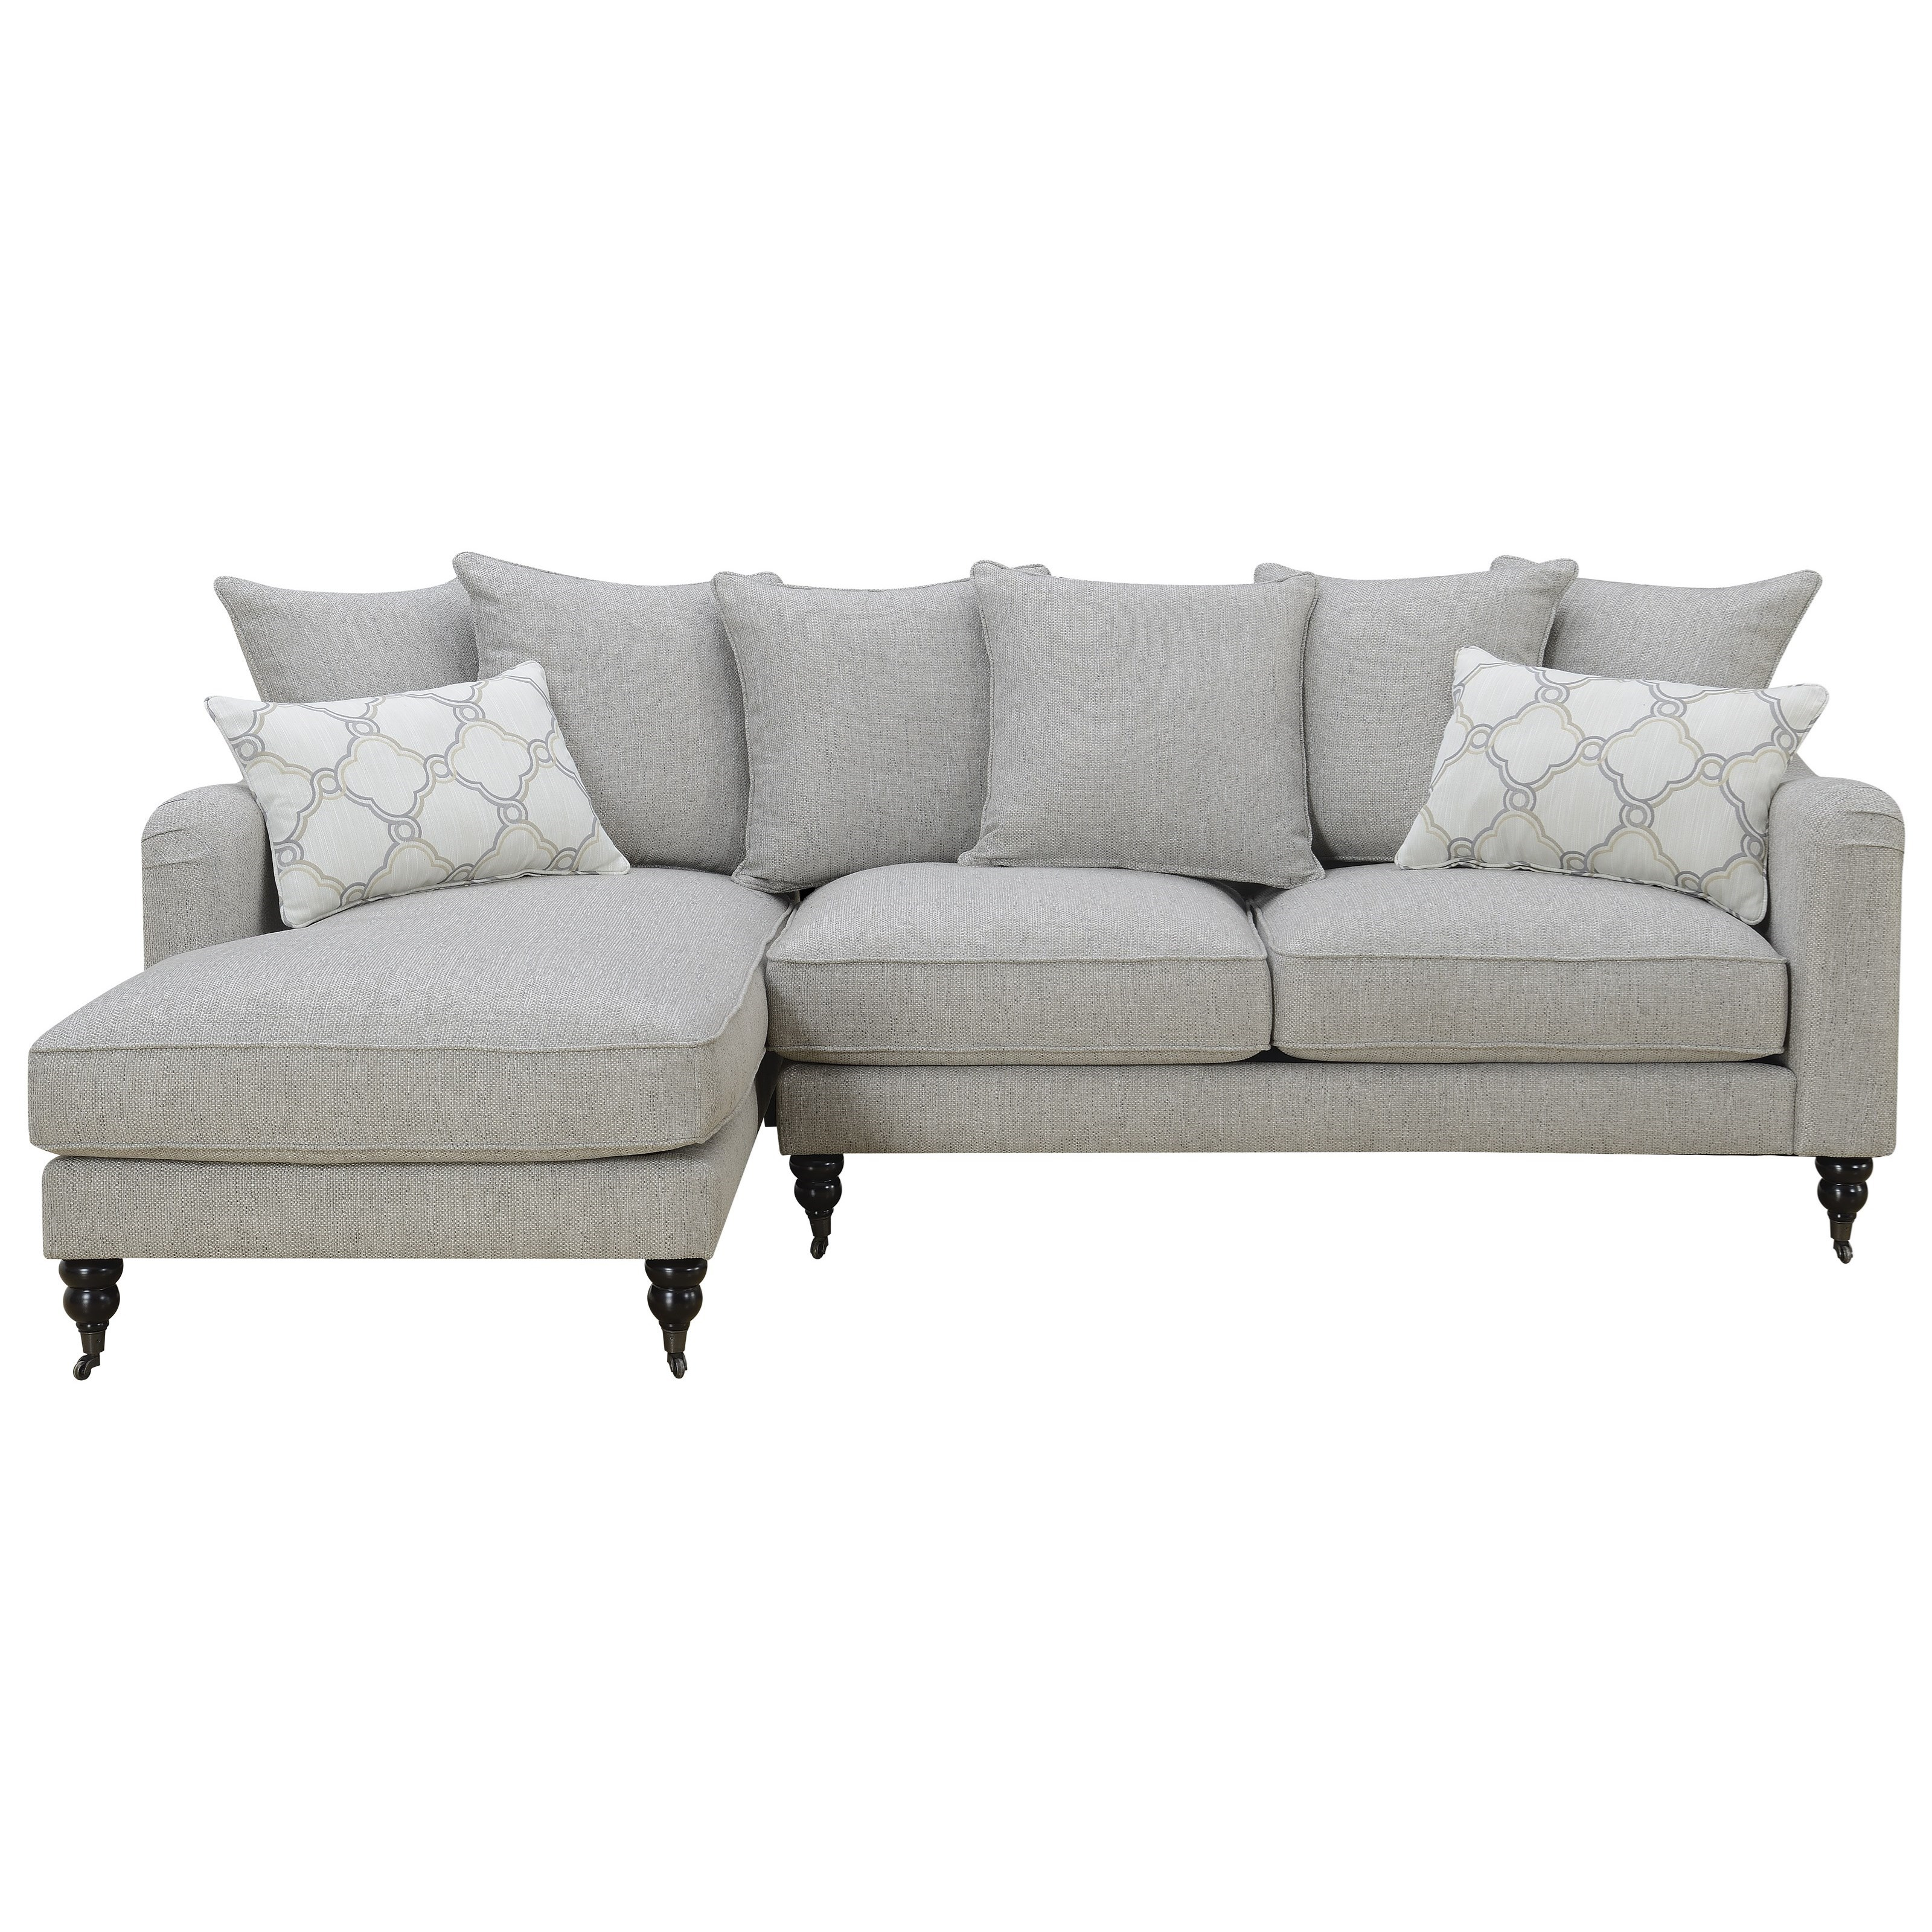 Amelie Sectional Sofa with Chaise by Emerald at Northeast Factory Direct